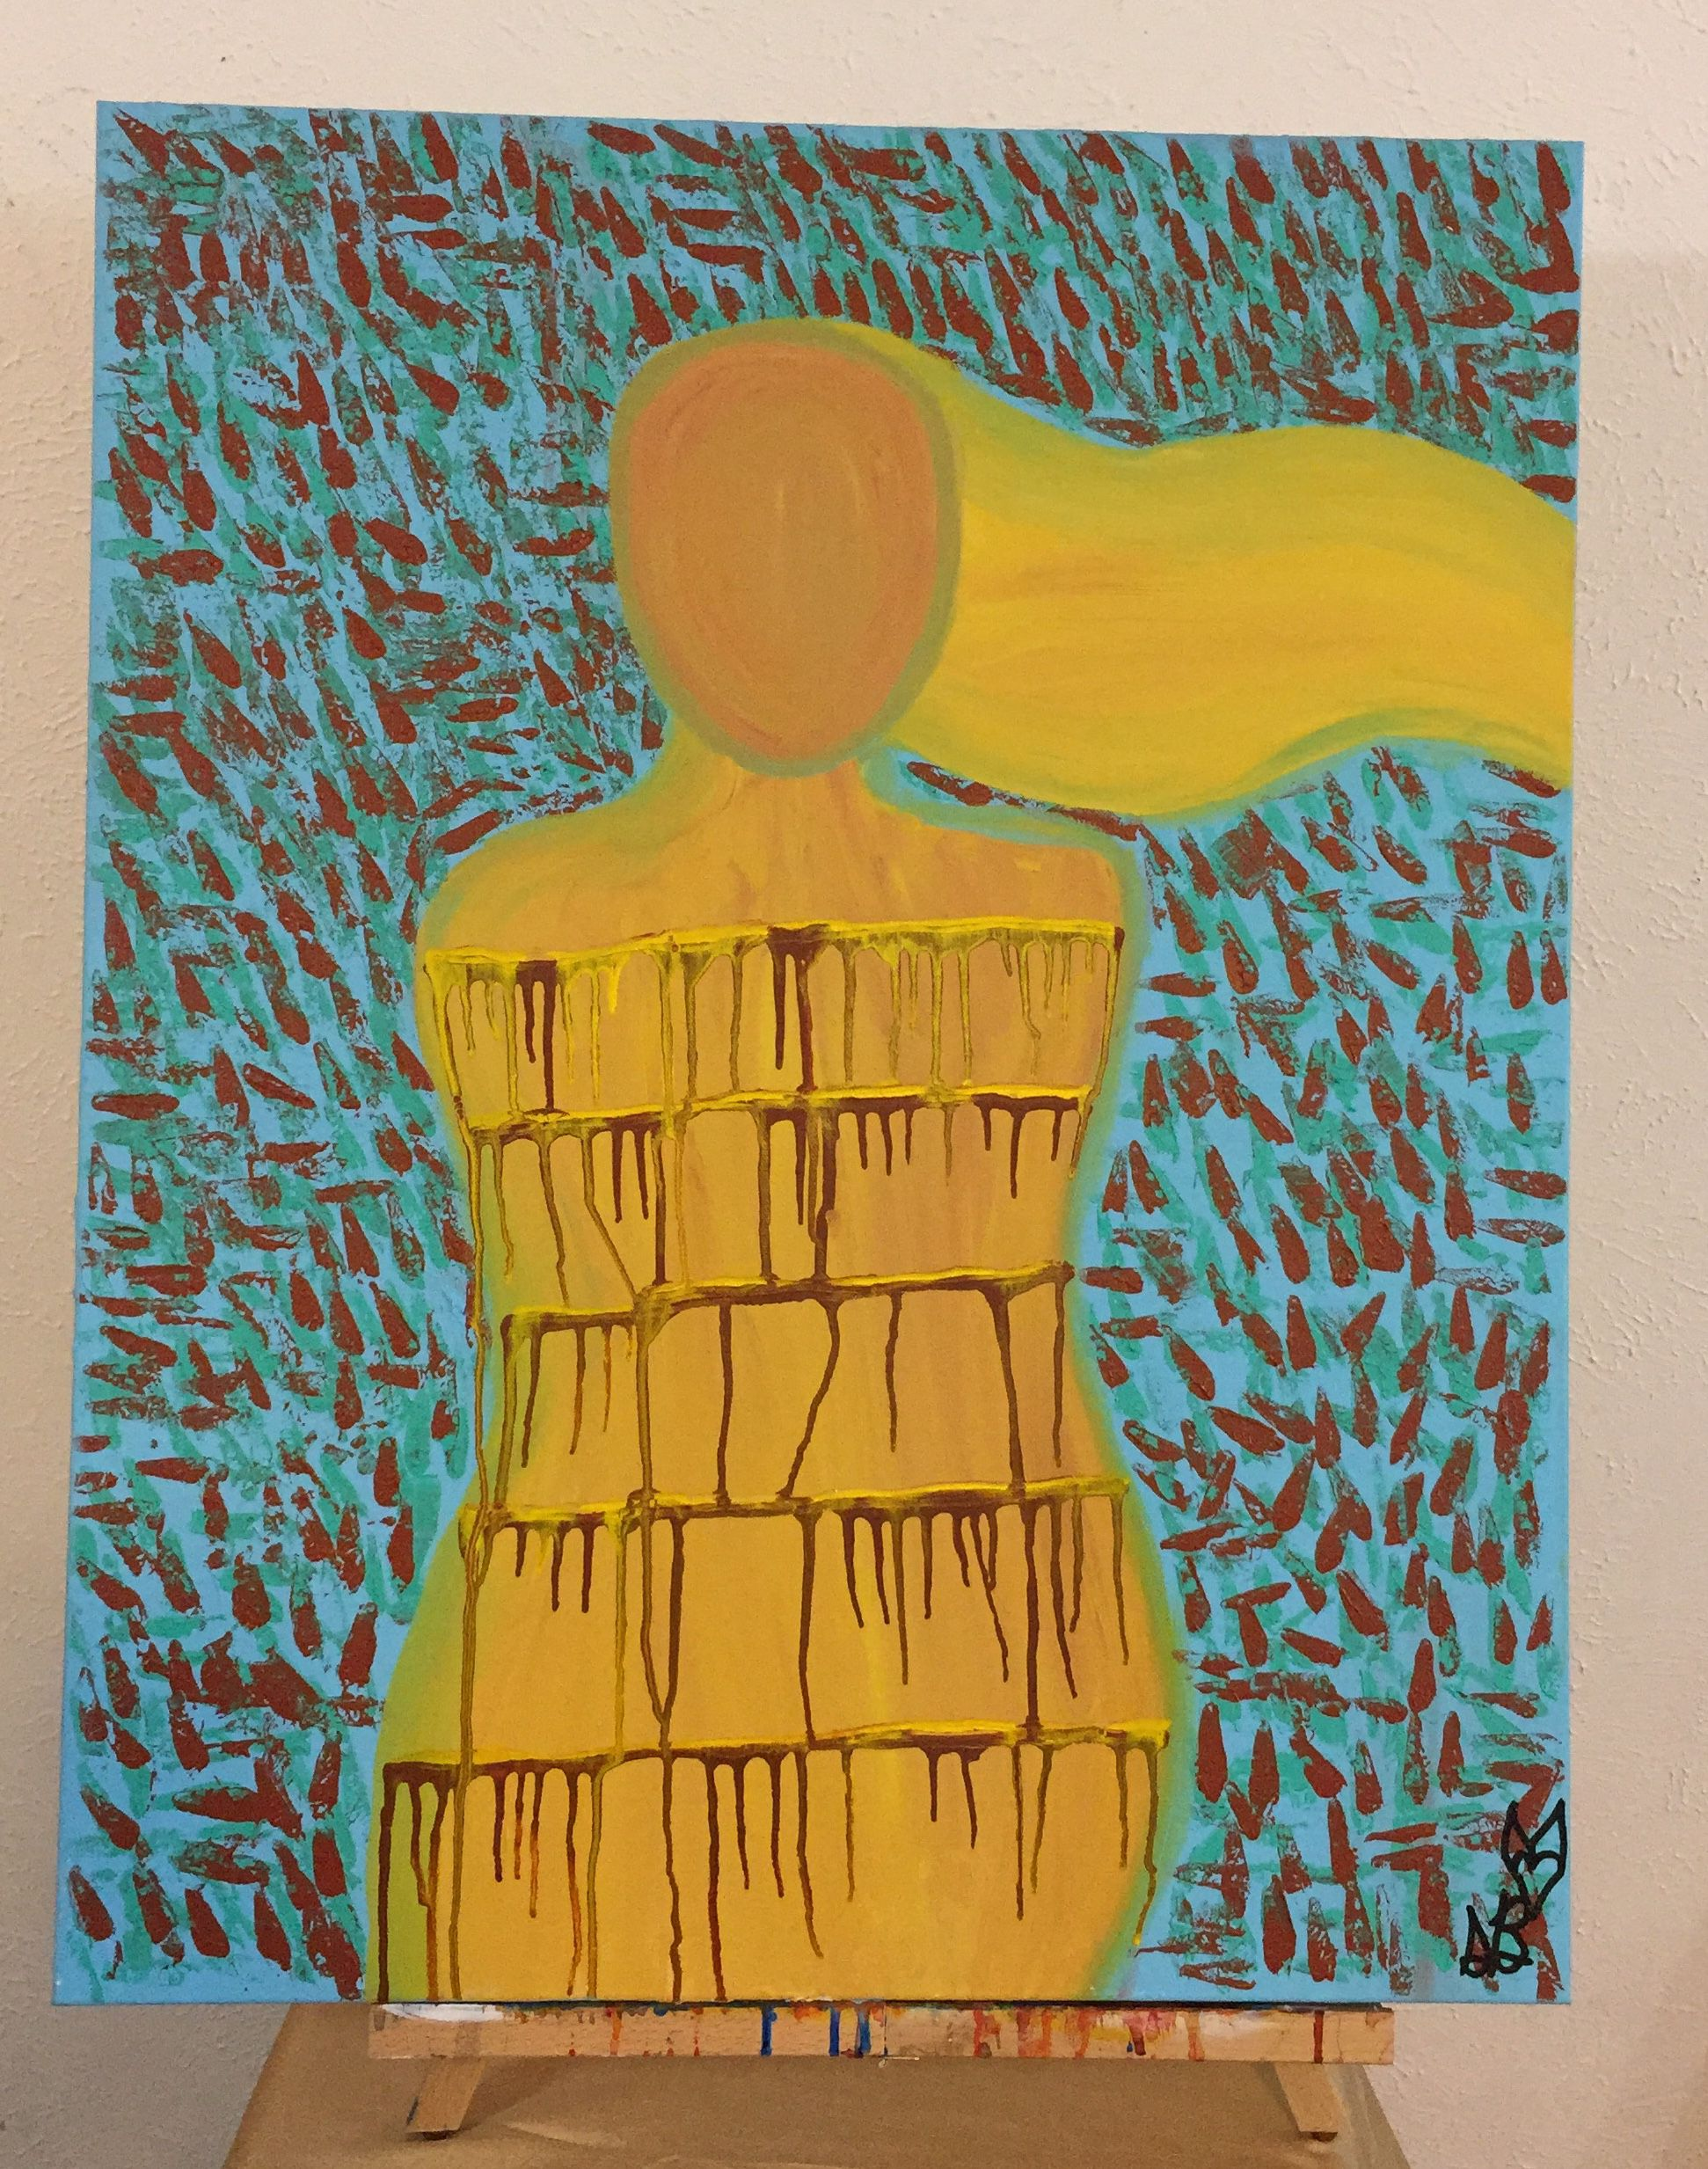 art painting decor acrylic canvas home figure original office wall large abstract figurative poetry drip